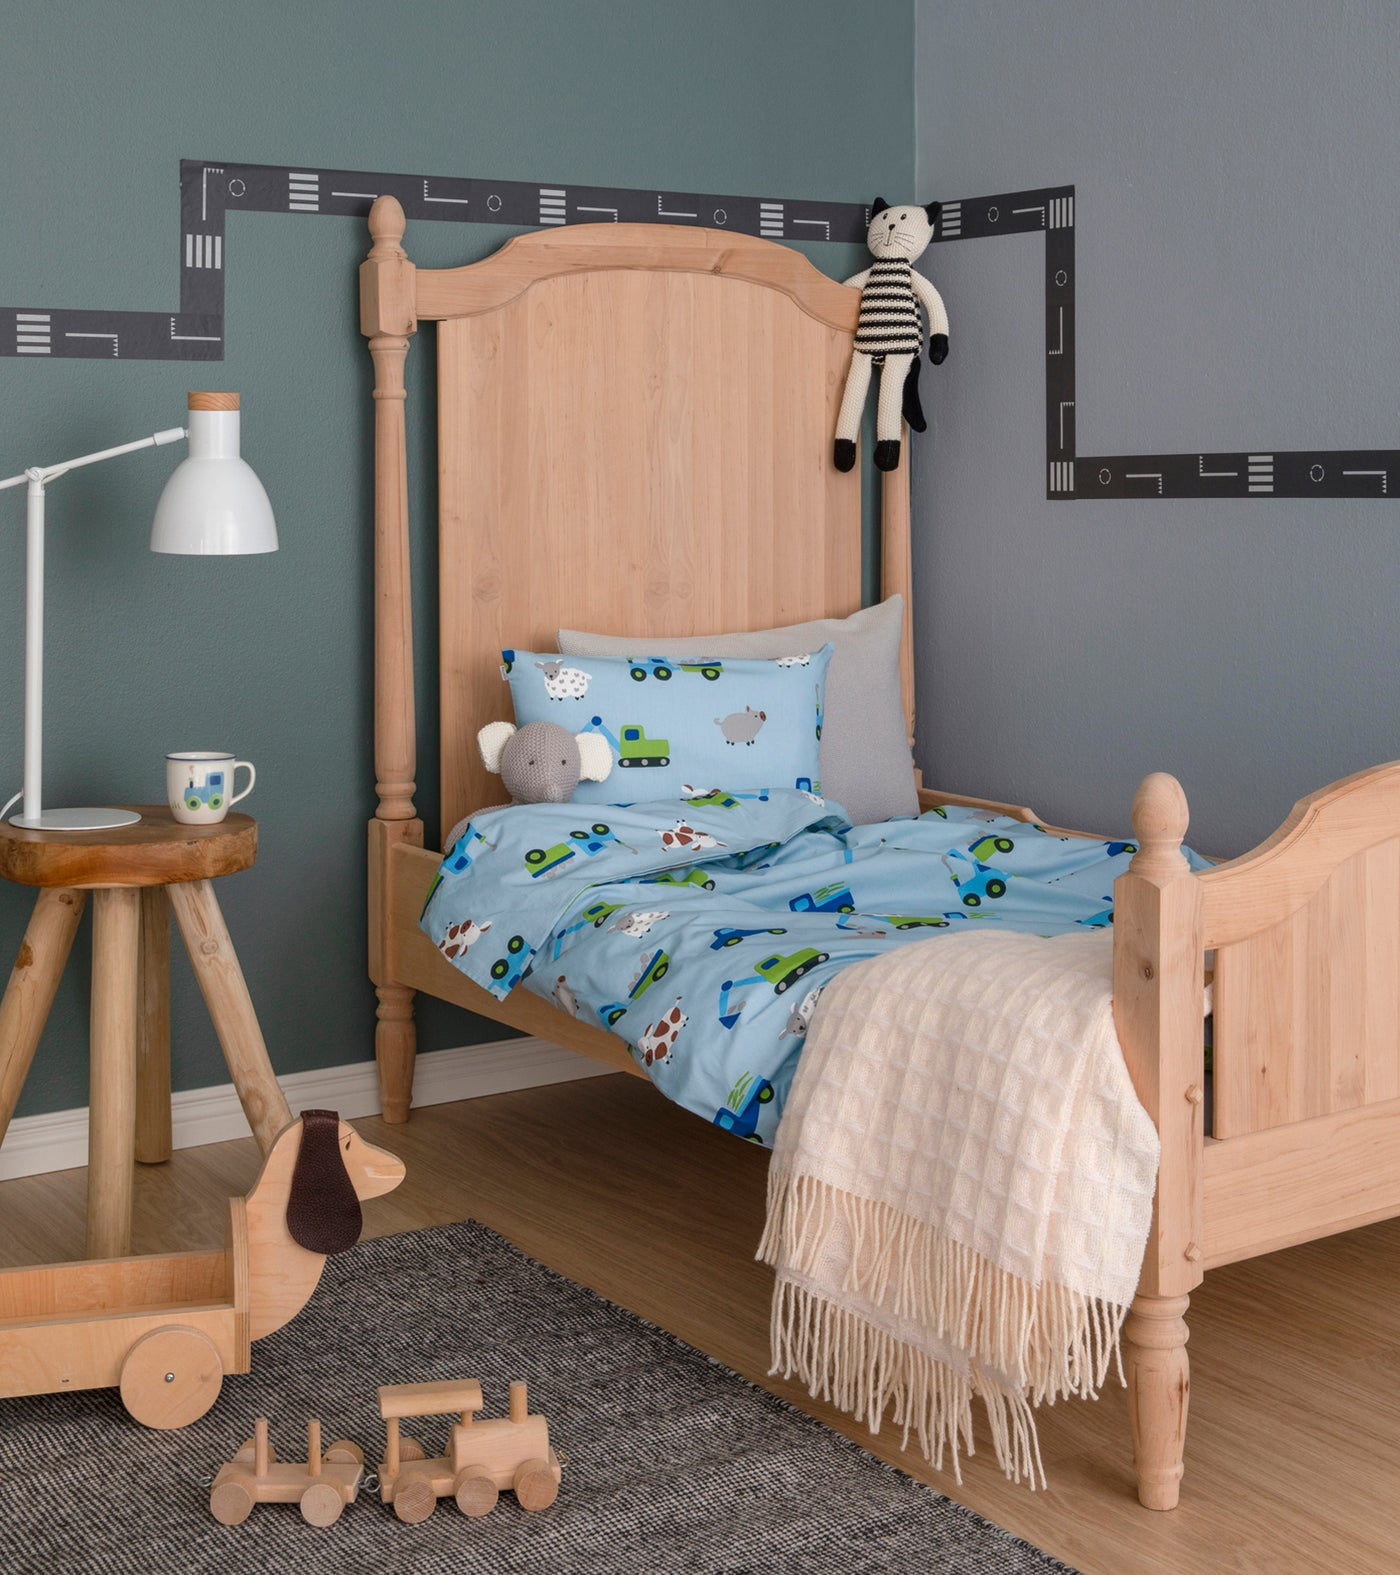 Shop The Look: Fully functional children's room